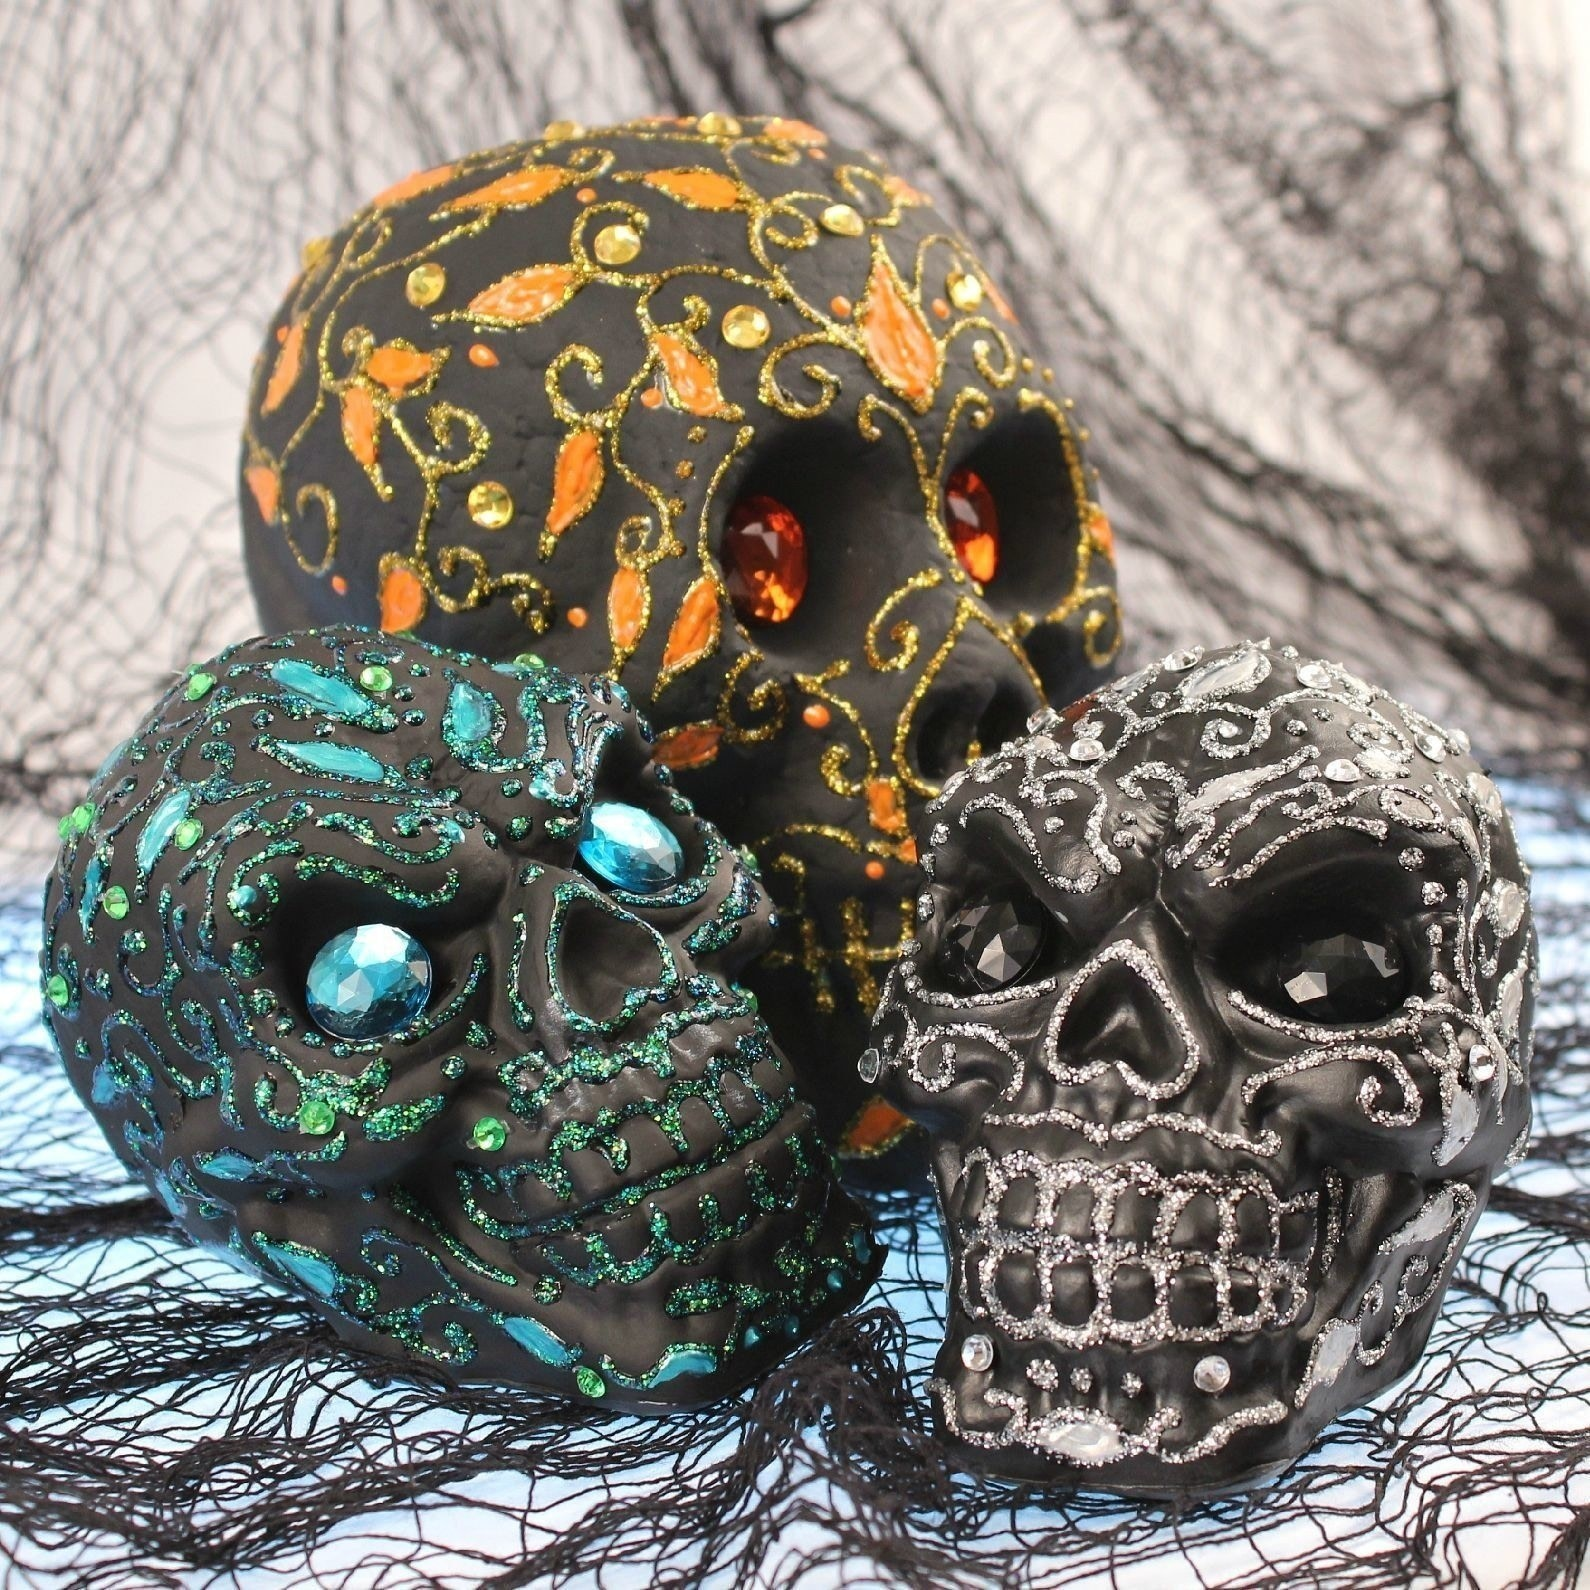 Decorative Halloween Skulls 183 How To Decorate A Skull